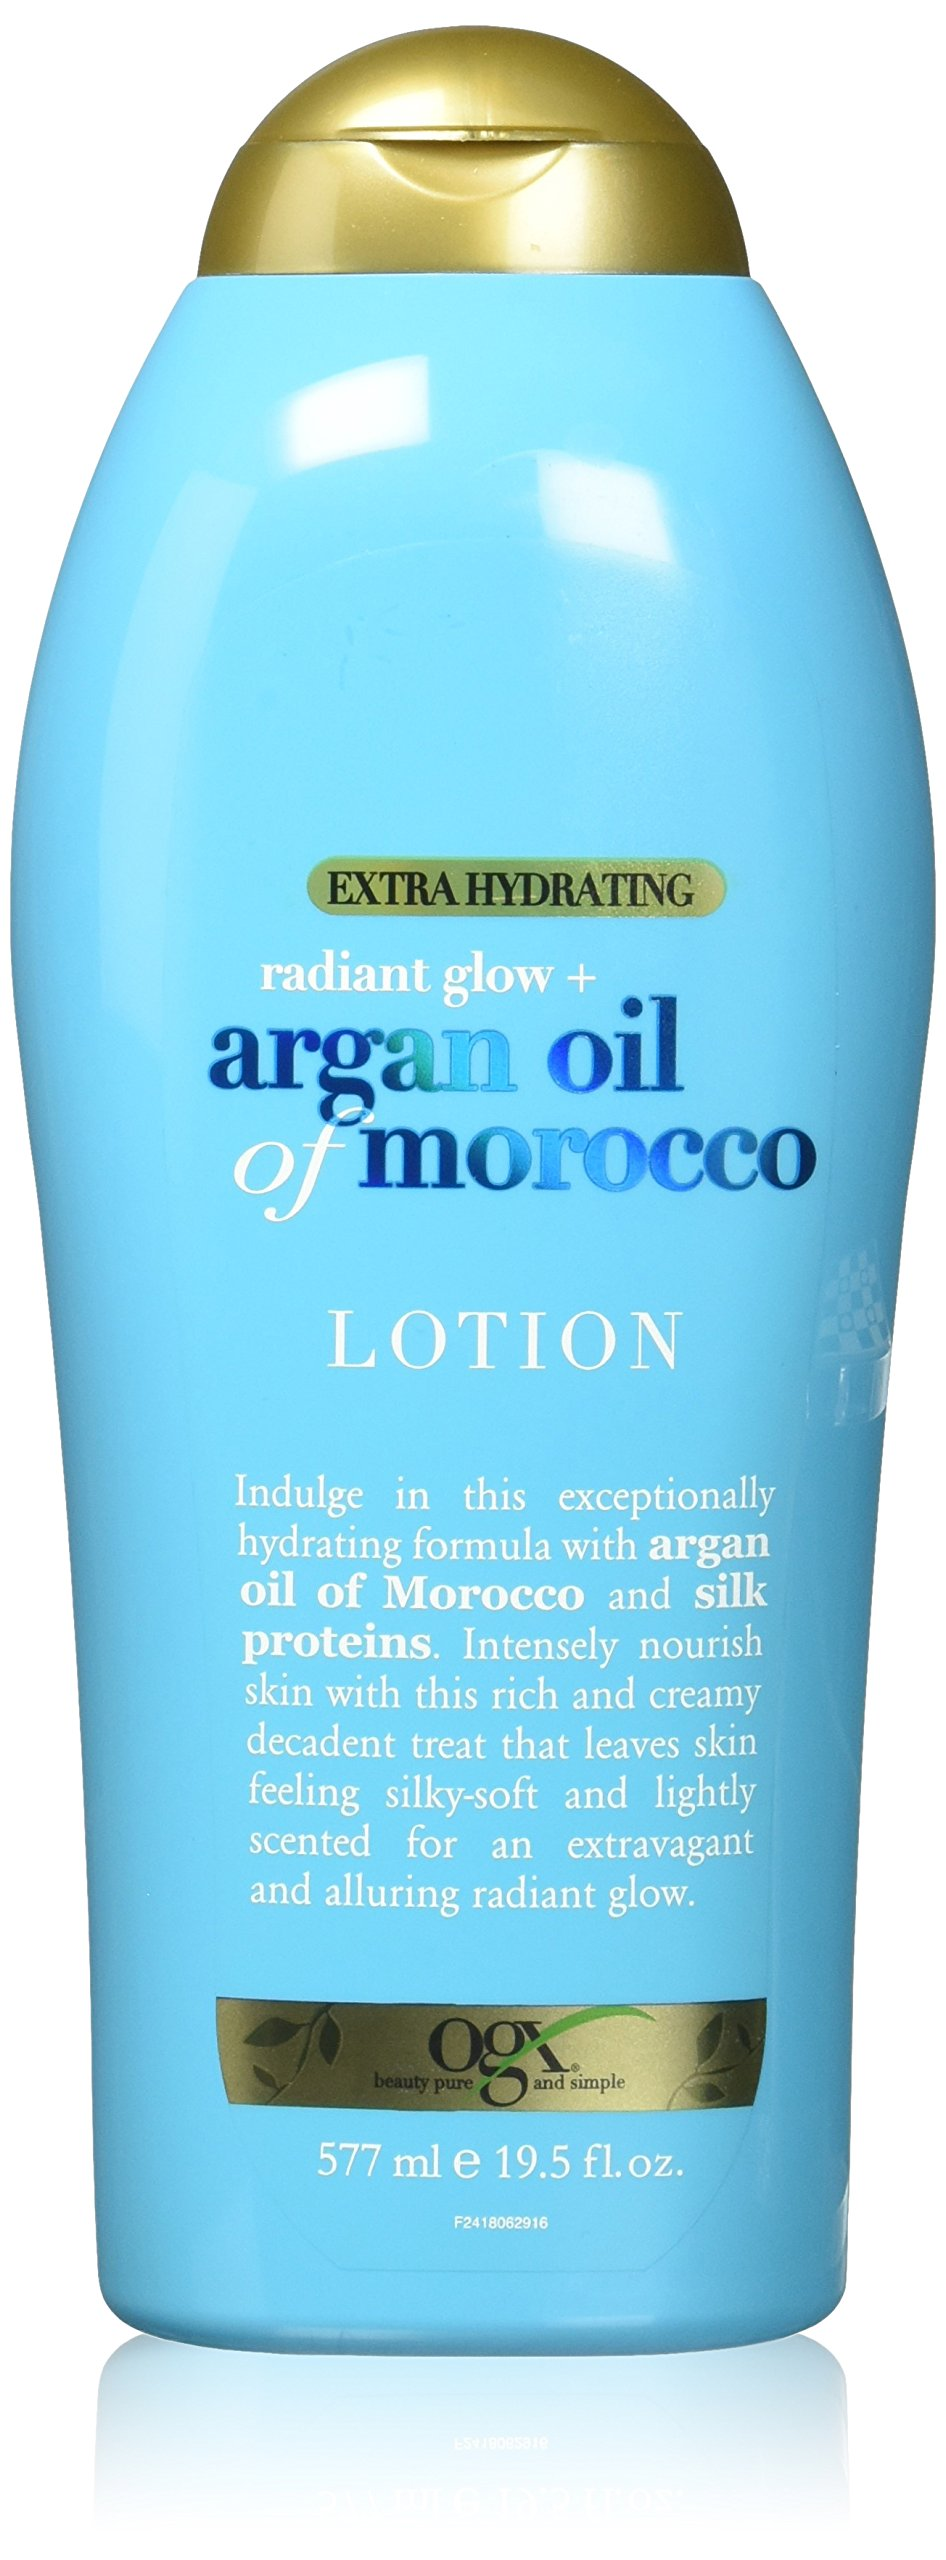 ogx organix shampoo moroccan argan oil. Black Bedroom Furniture Sets. Home Design Ideas